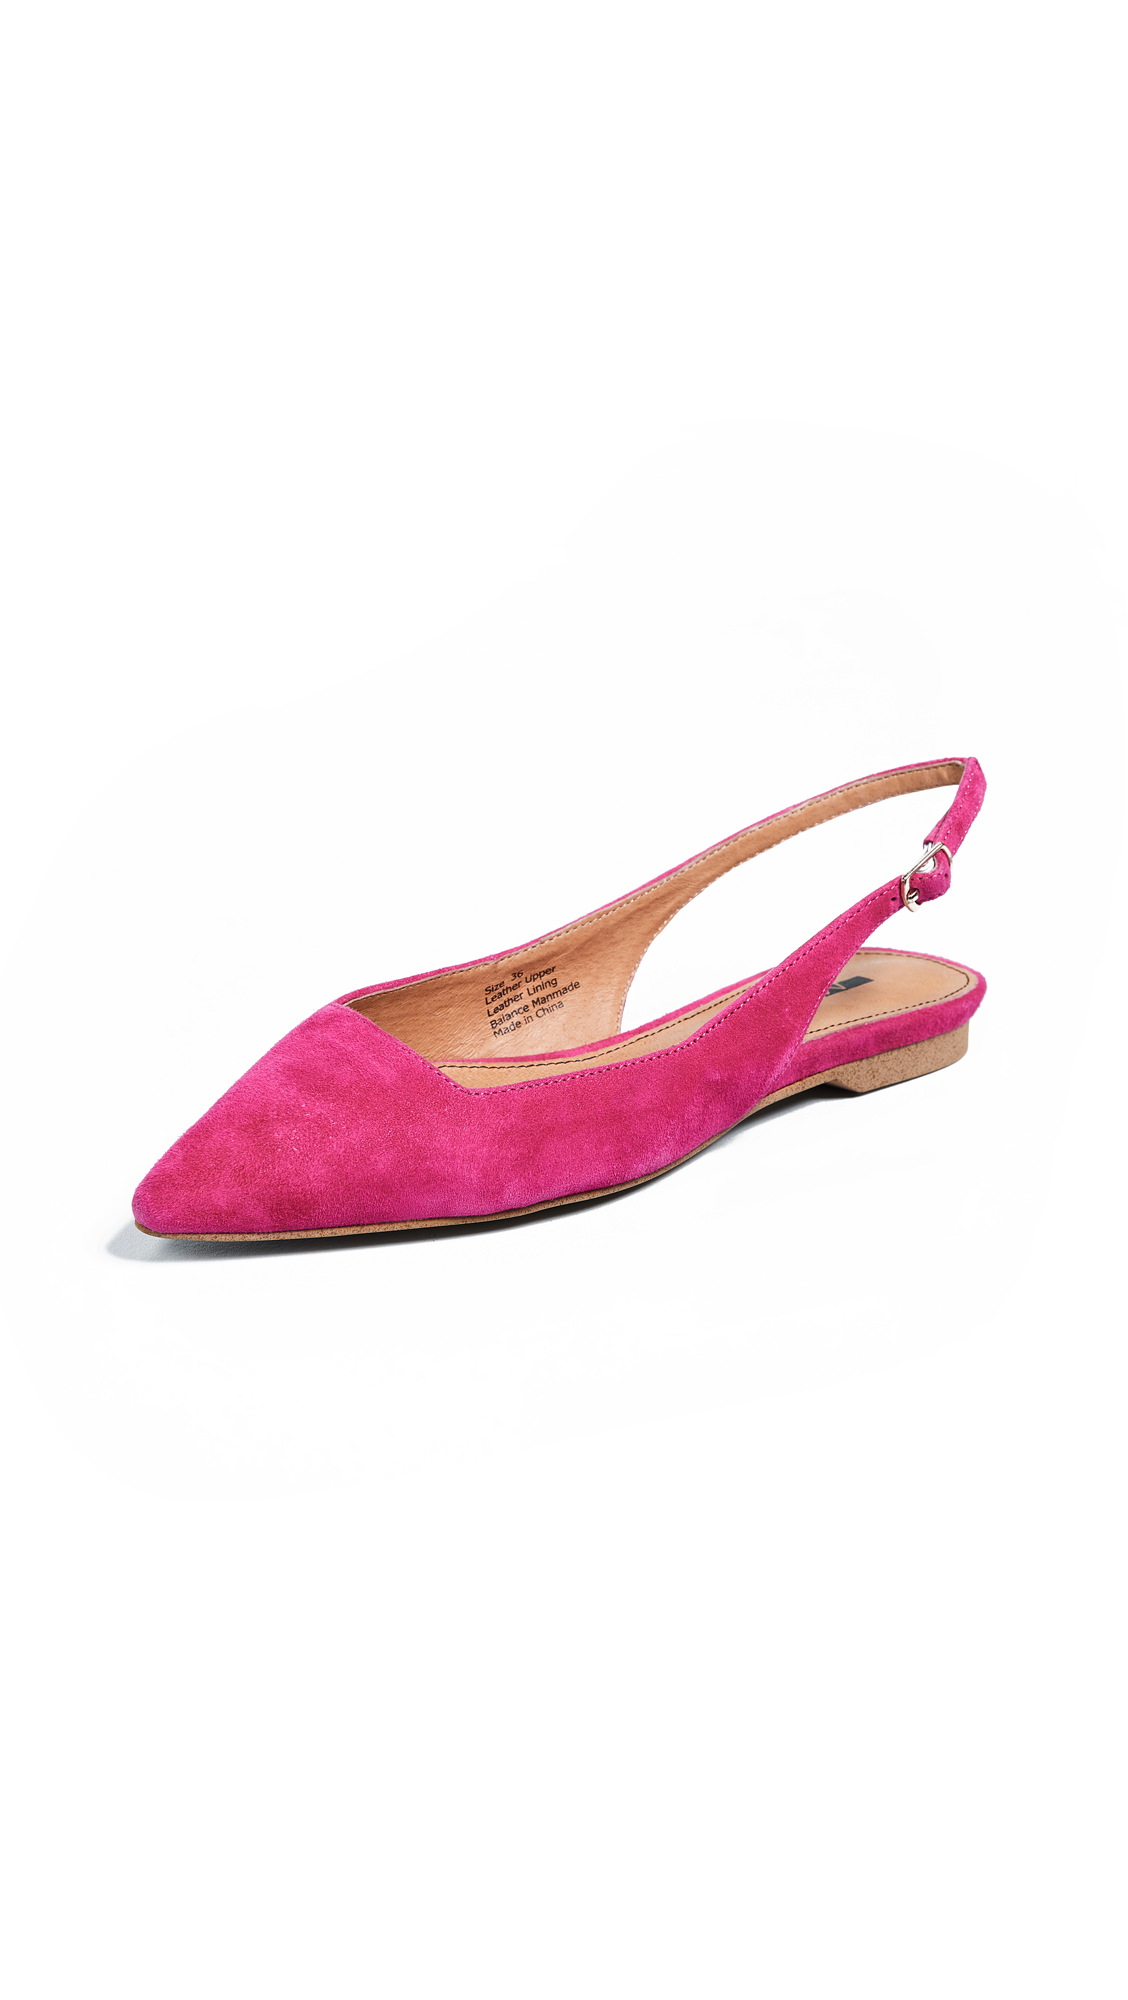 Photo of Matiko Lori Slingback Flats - buy Matiko shoes